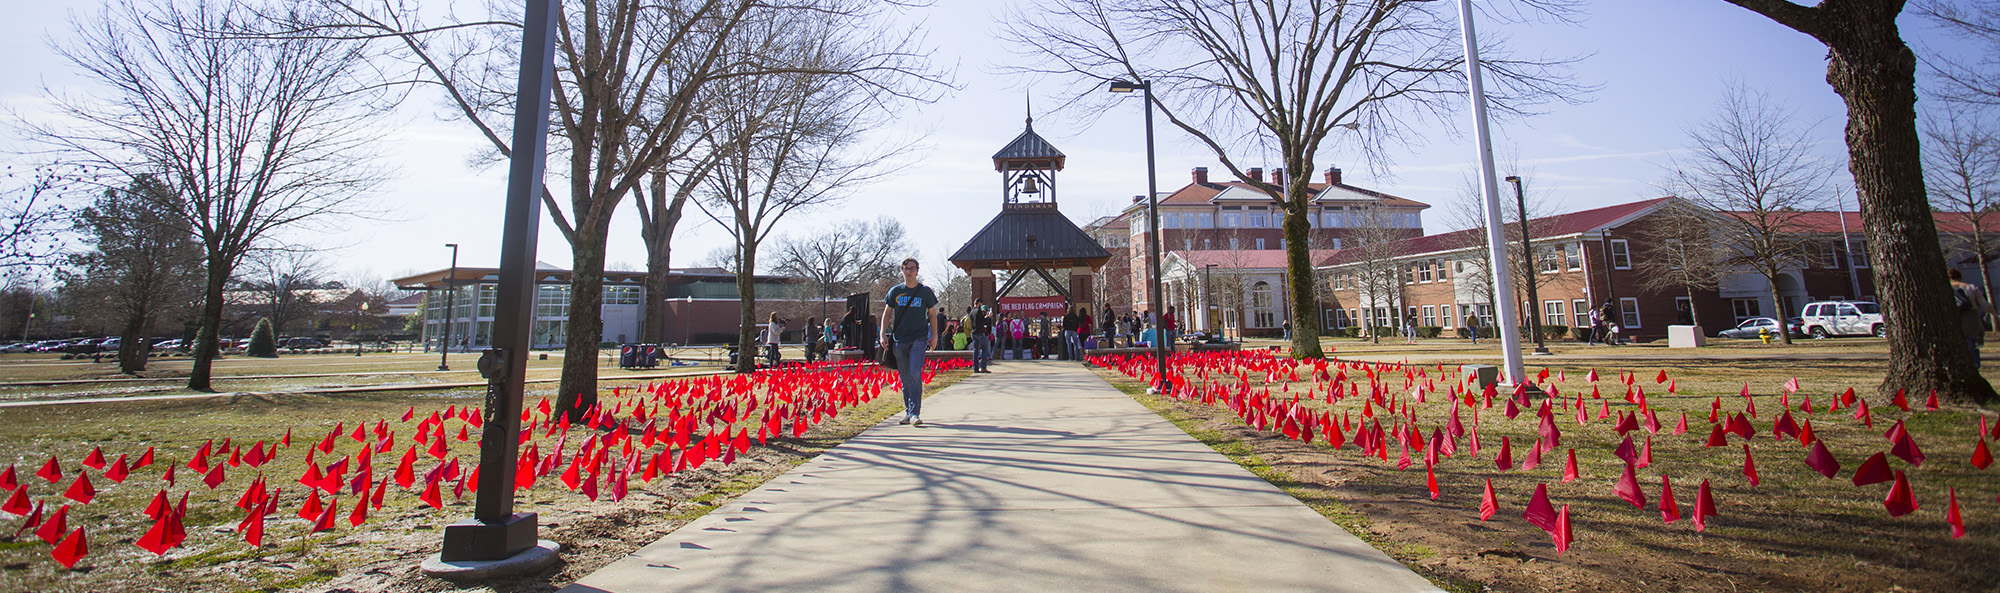 Students are seenat an event bringing awareness to relationship violence.